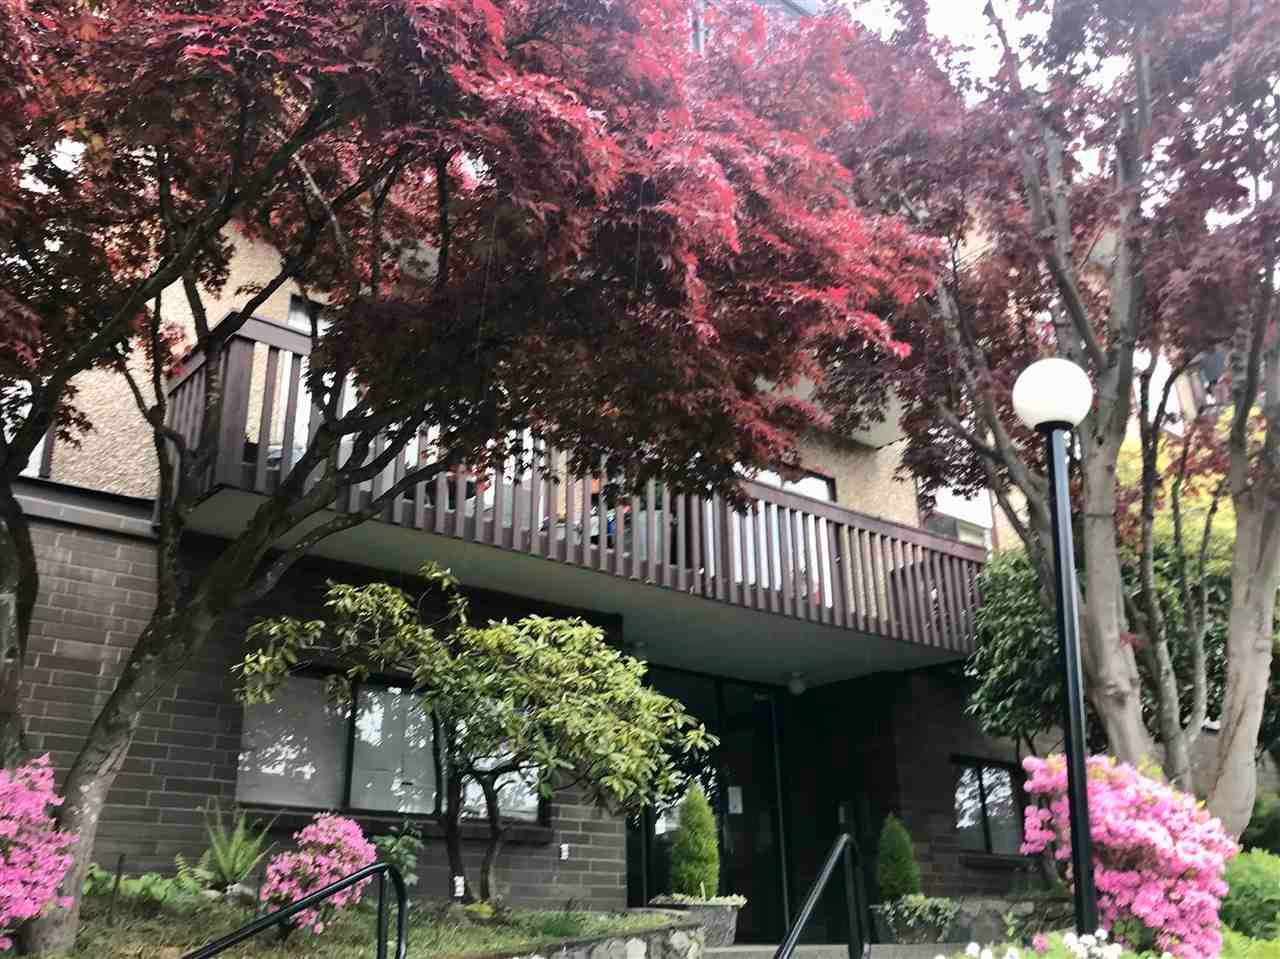 """Main Photo: 203 120 E 4TH Street in North Vancouver: Lower Lonsdale Condo for sale in """"Excelsior House"""" : MLS®# R2575656"""